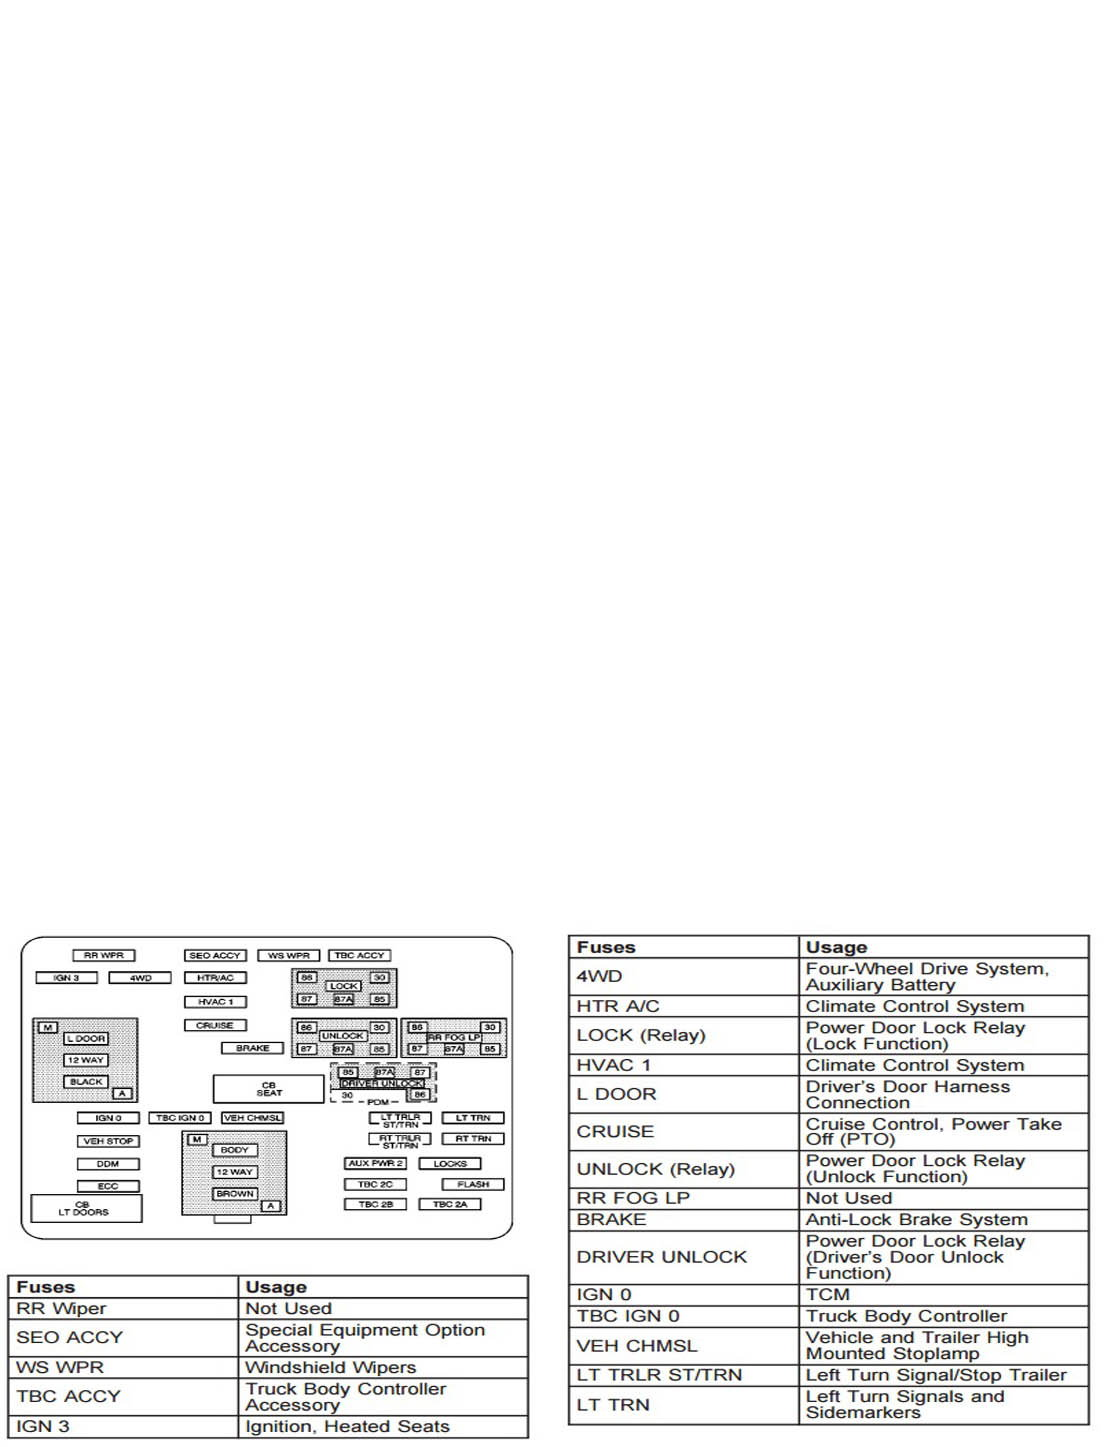 2008 Gmc 2500hd Fuse Diagram Download Wiring Diagrams Sierra Box Chevrolet Silverado Gmt800 1999 2006 Chevroletforum Rh Com